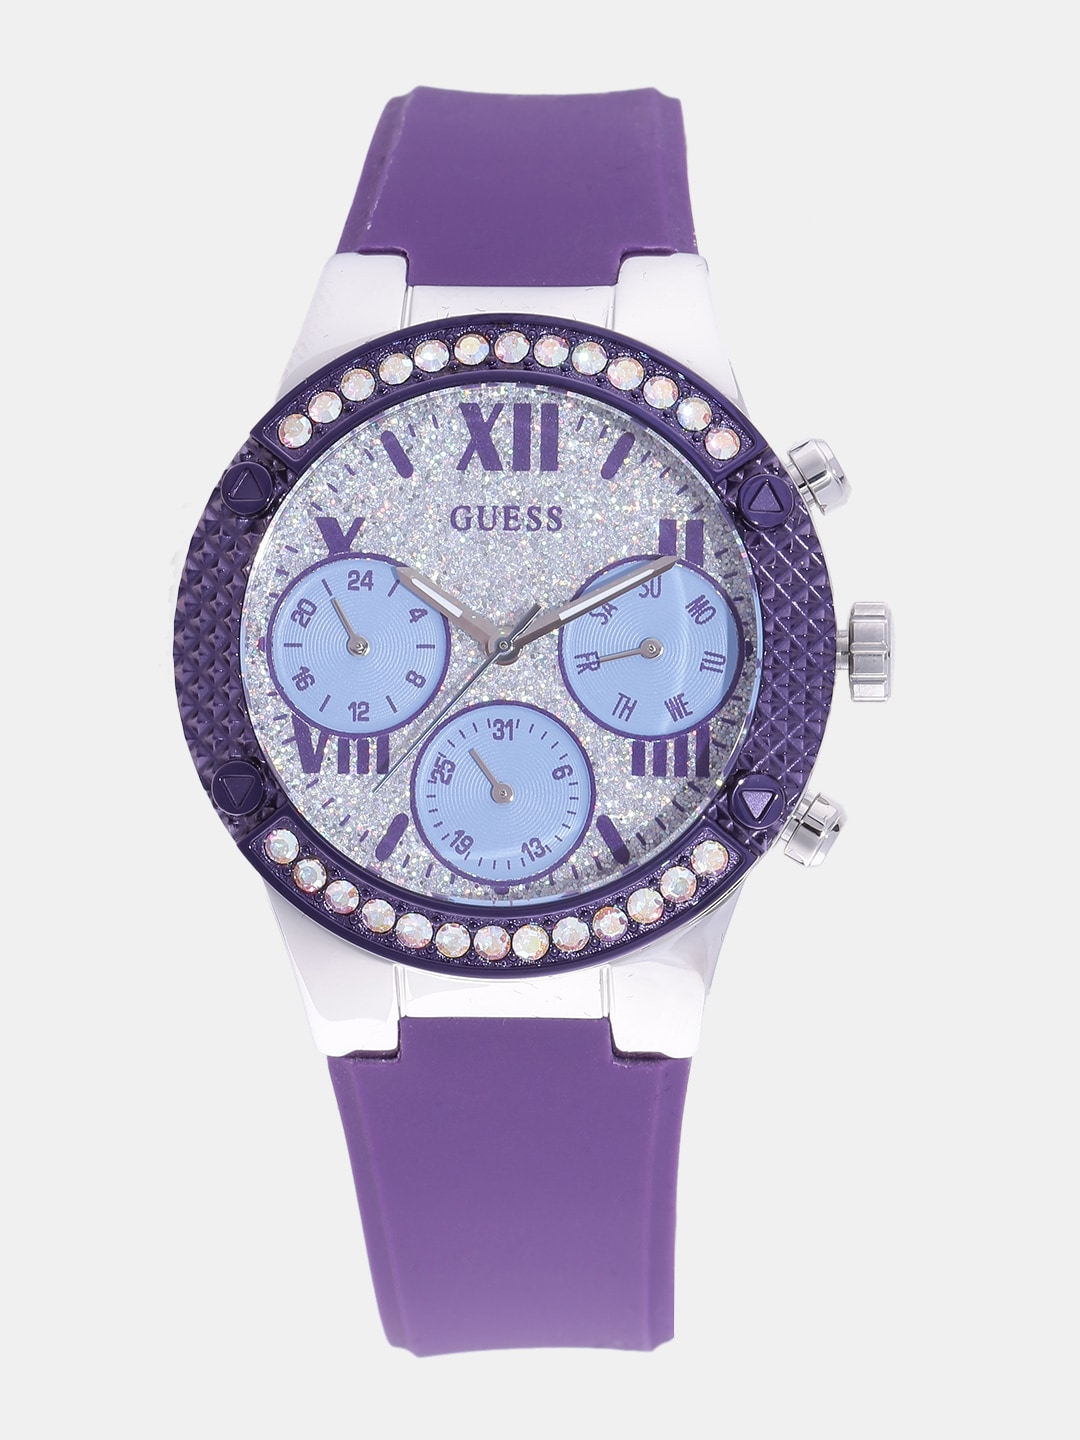 GUESS Women Silver-Toned Analogue Watch W0773L4_OR image